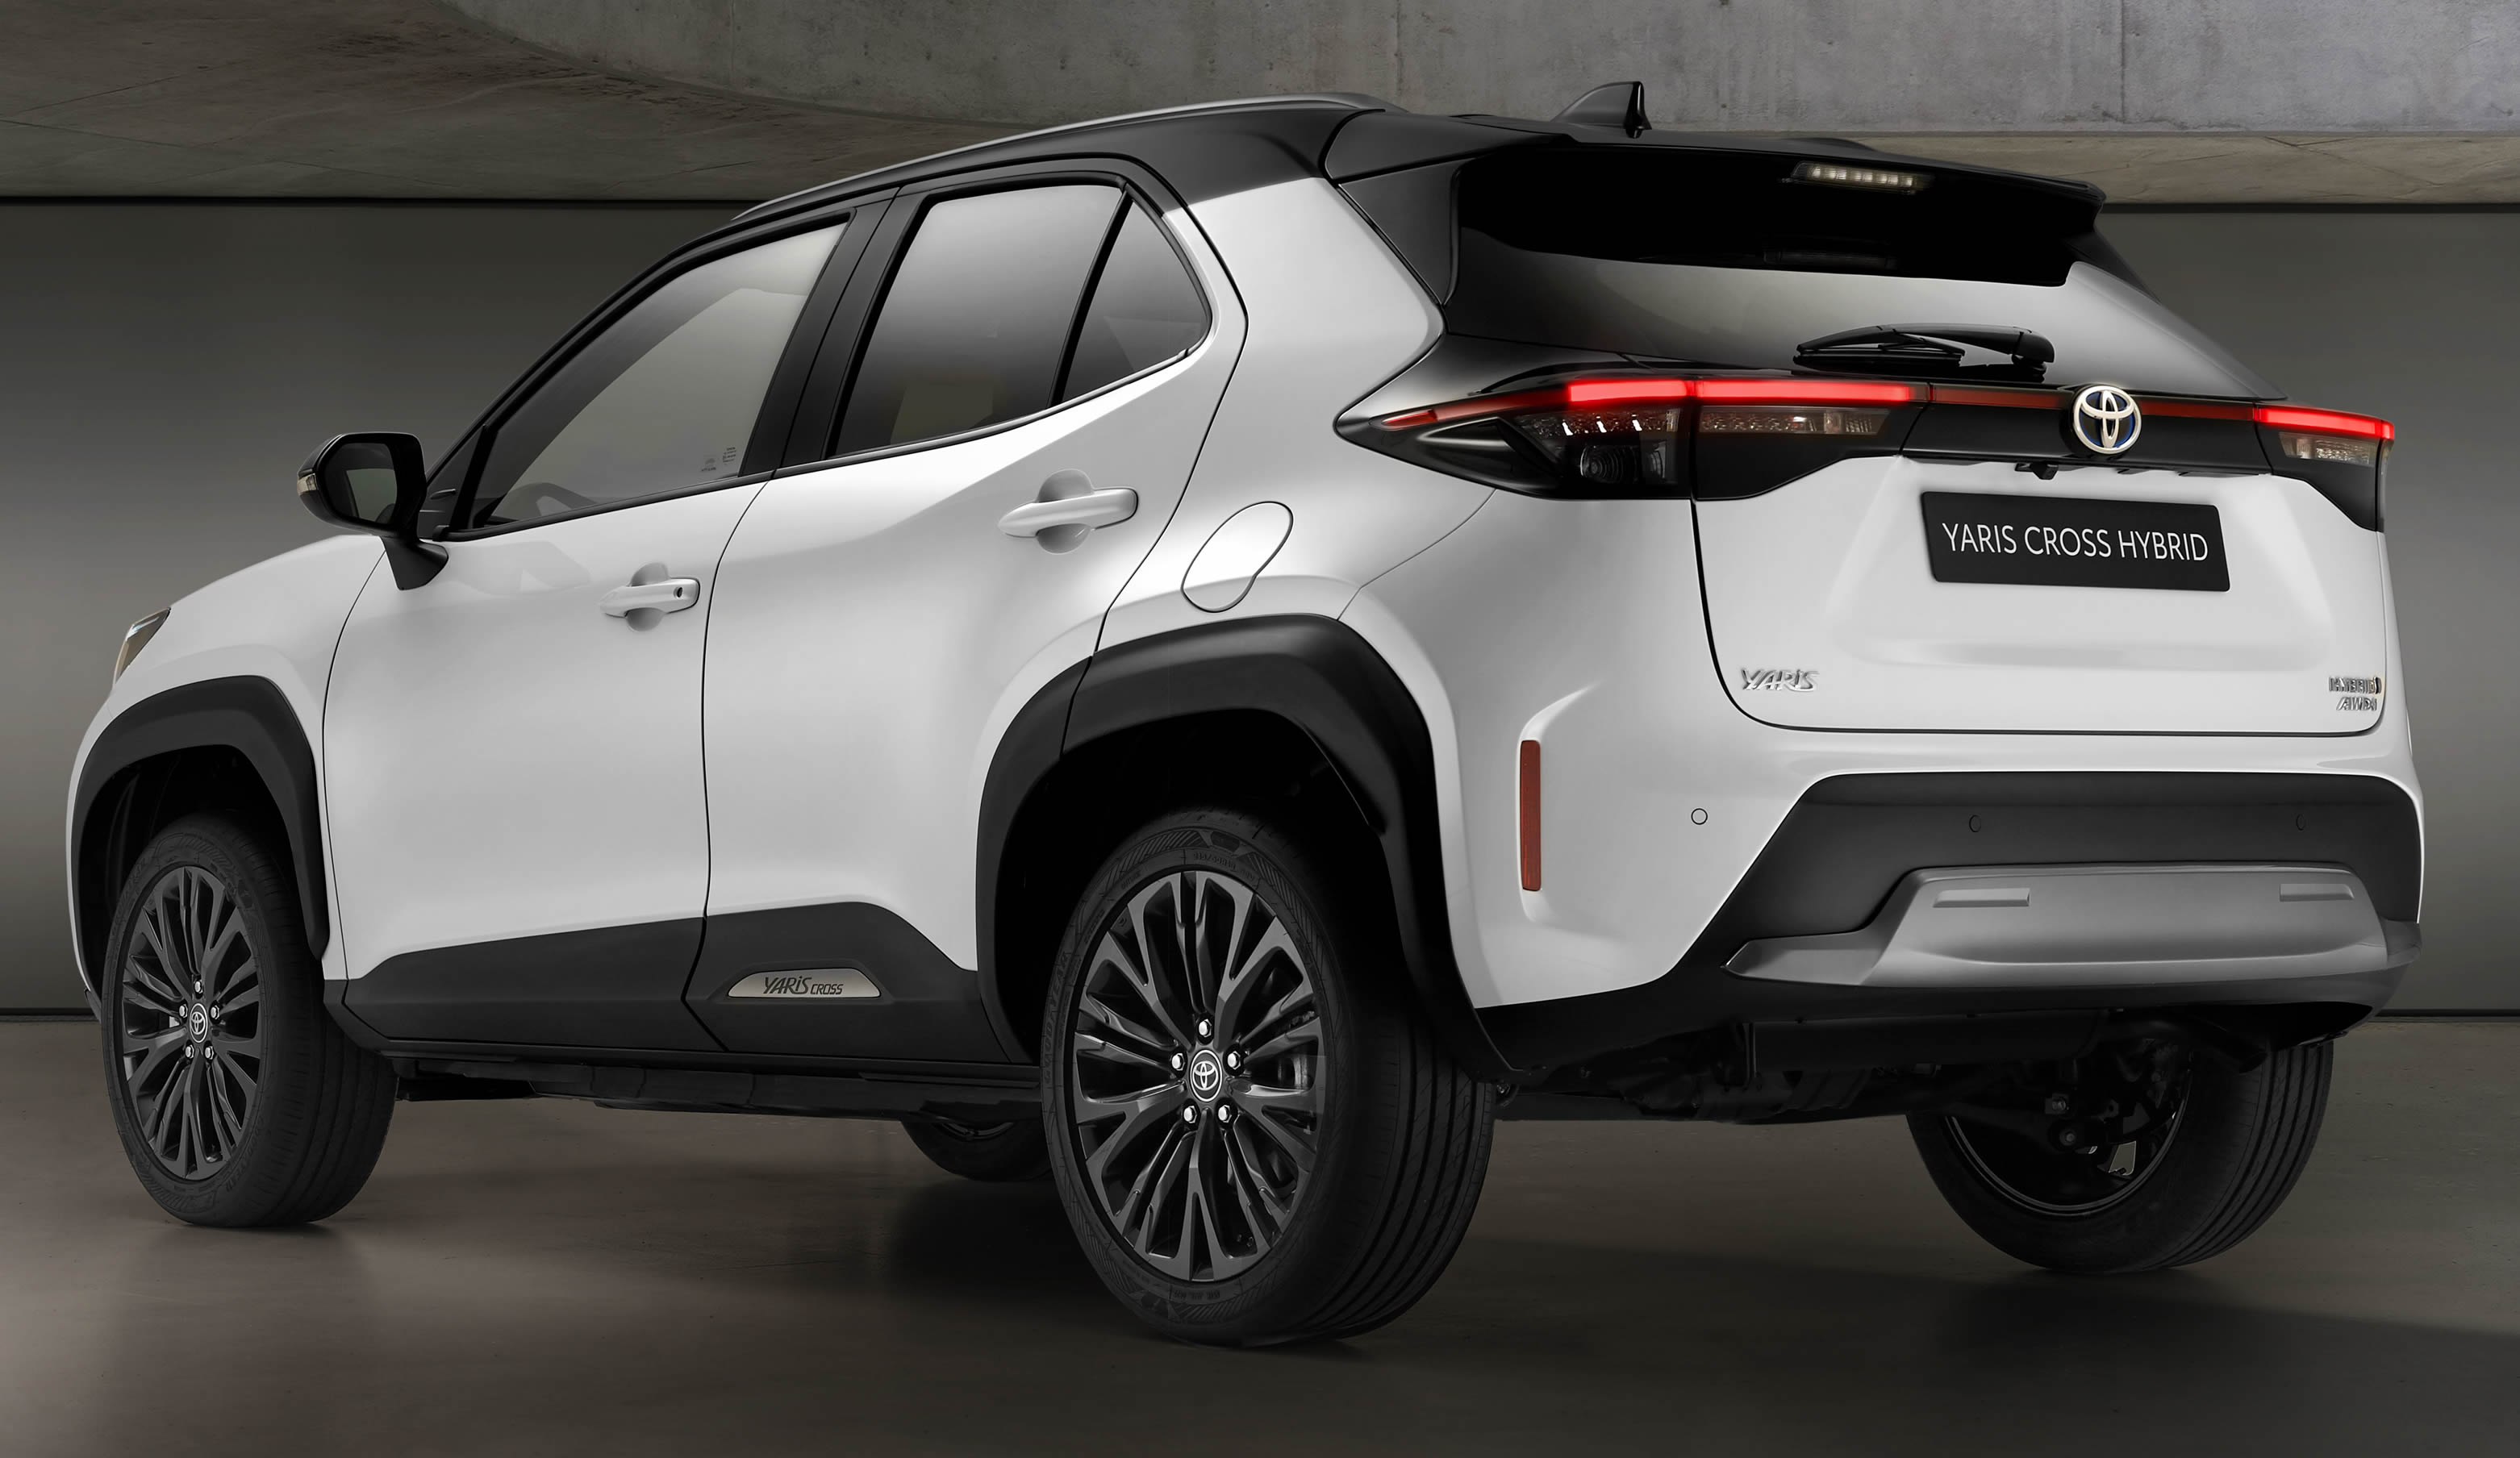 2021 new Toyota Yaris Cross Dynamic exterior image from rear